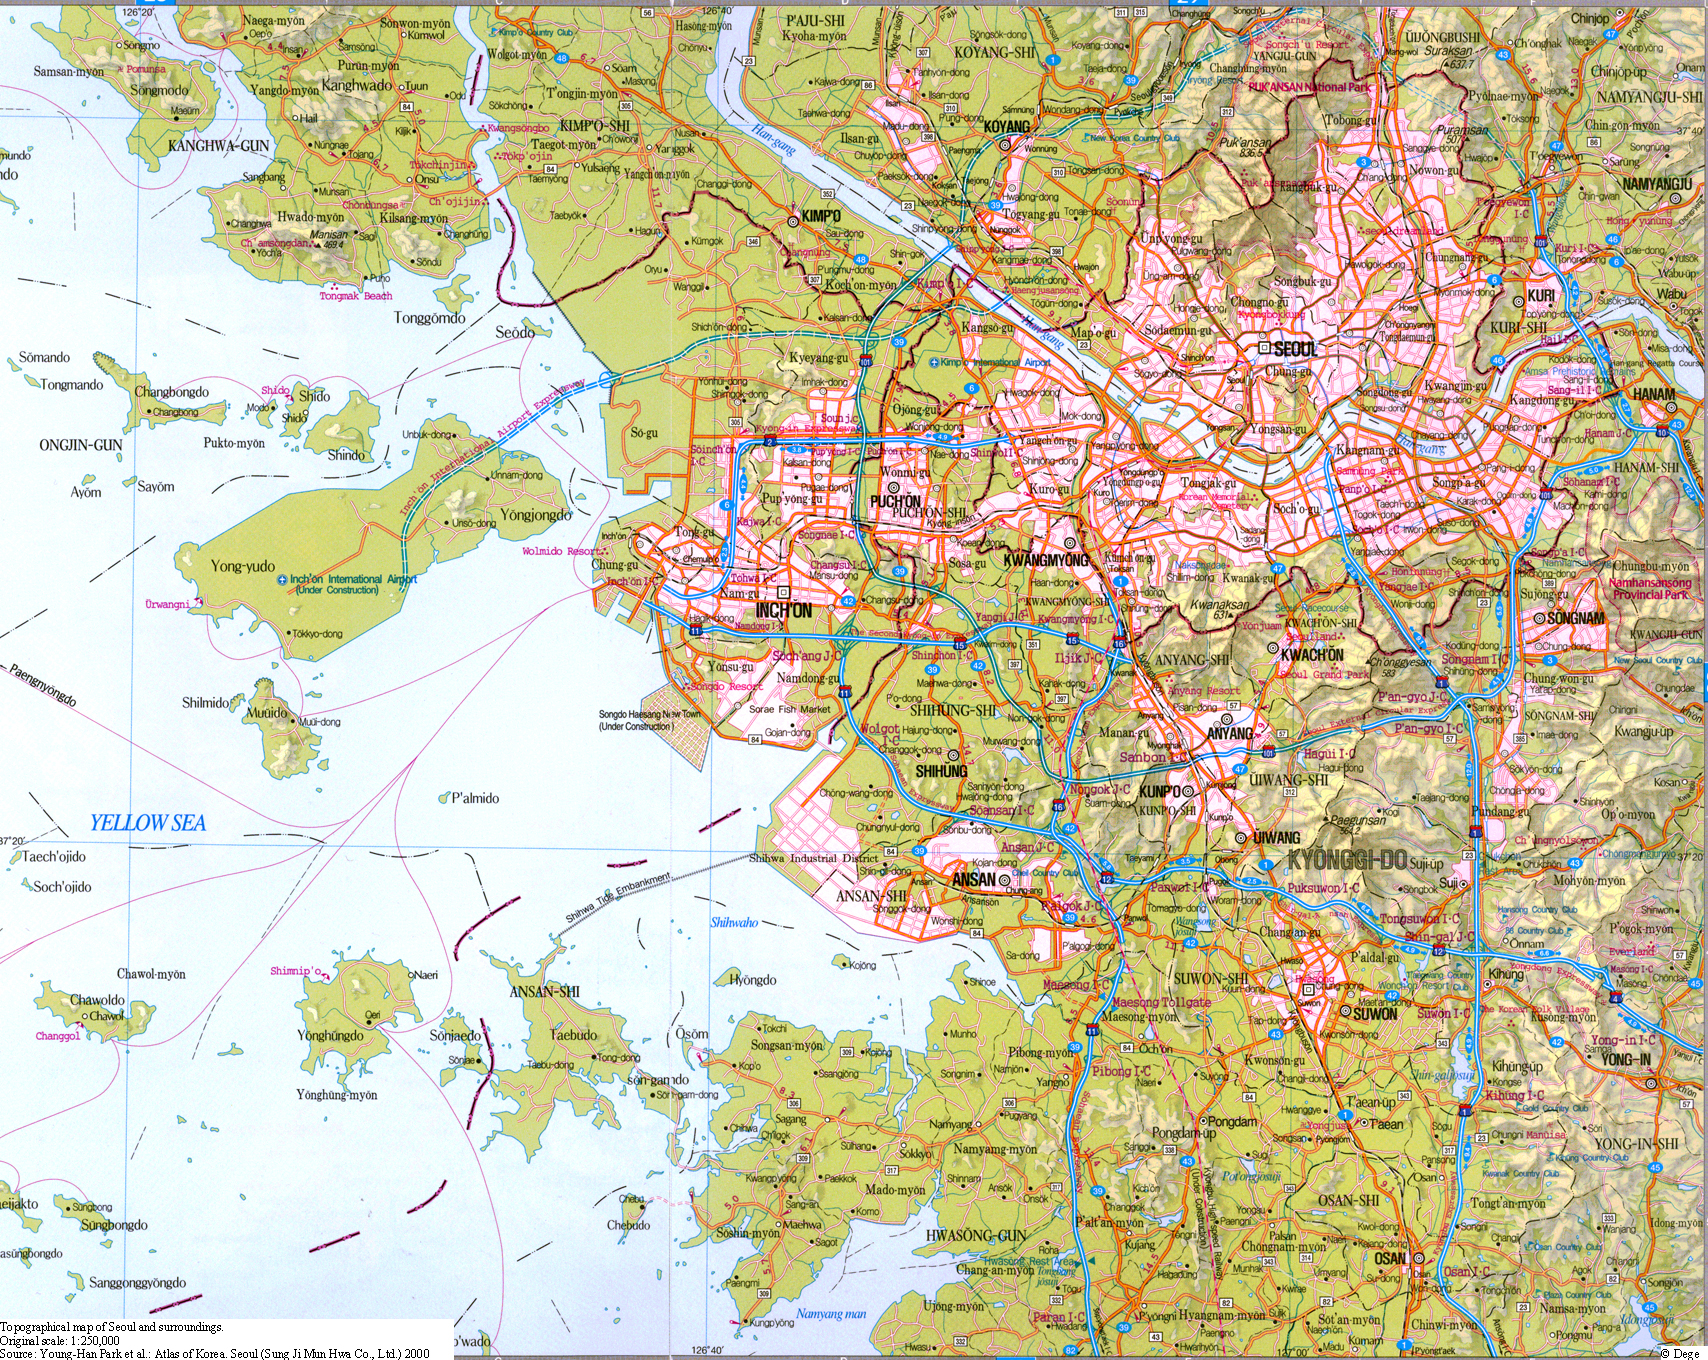 Seoul Subway Map 1980s.Which Are The World S Super Cities Hyper Cities And Mega Cities